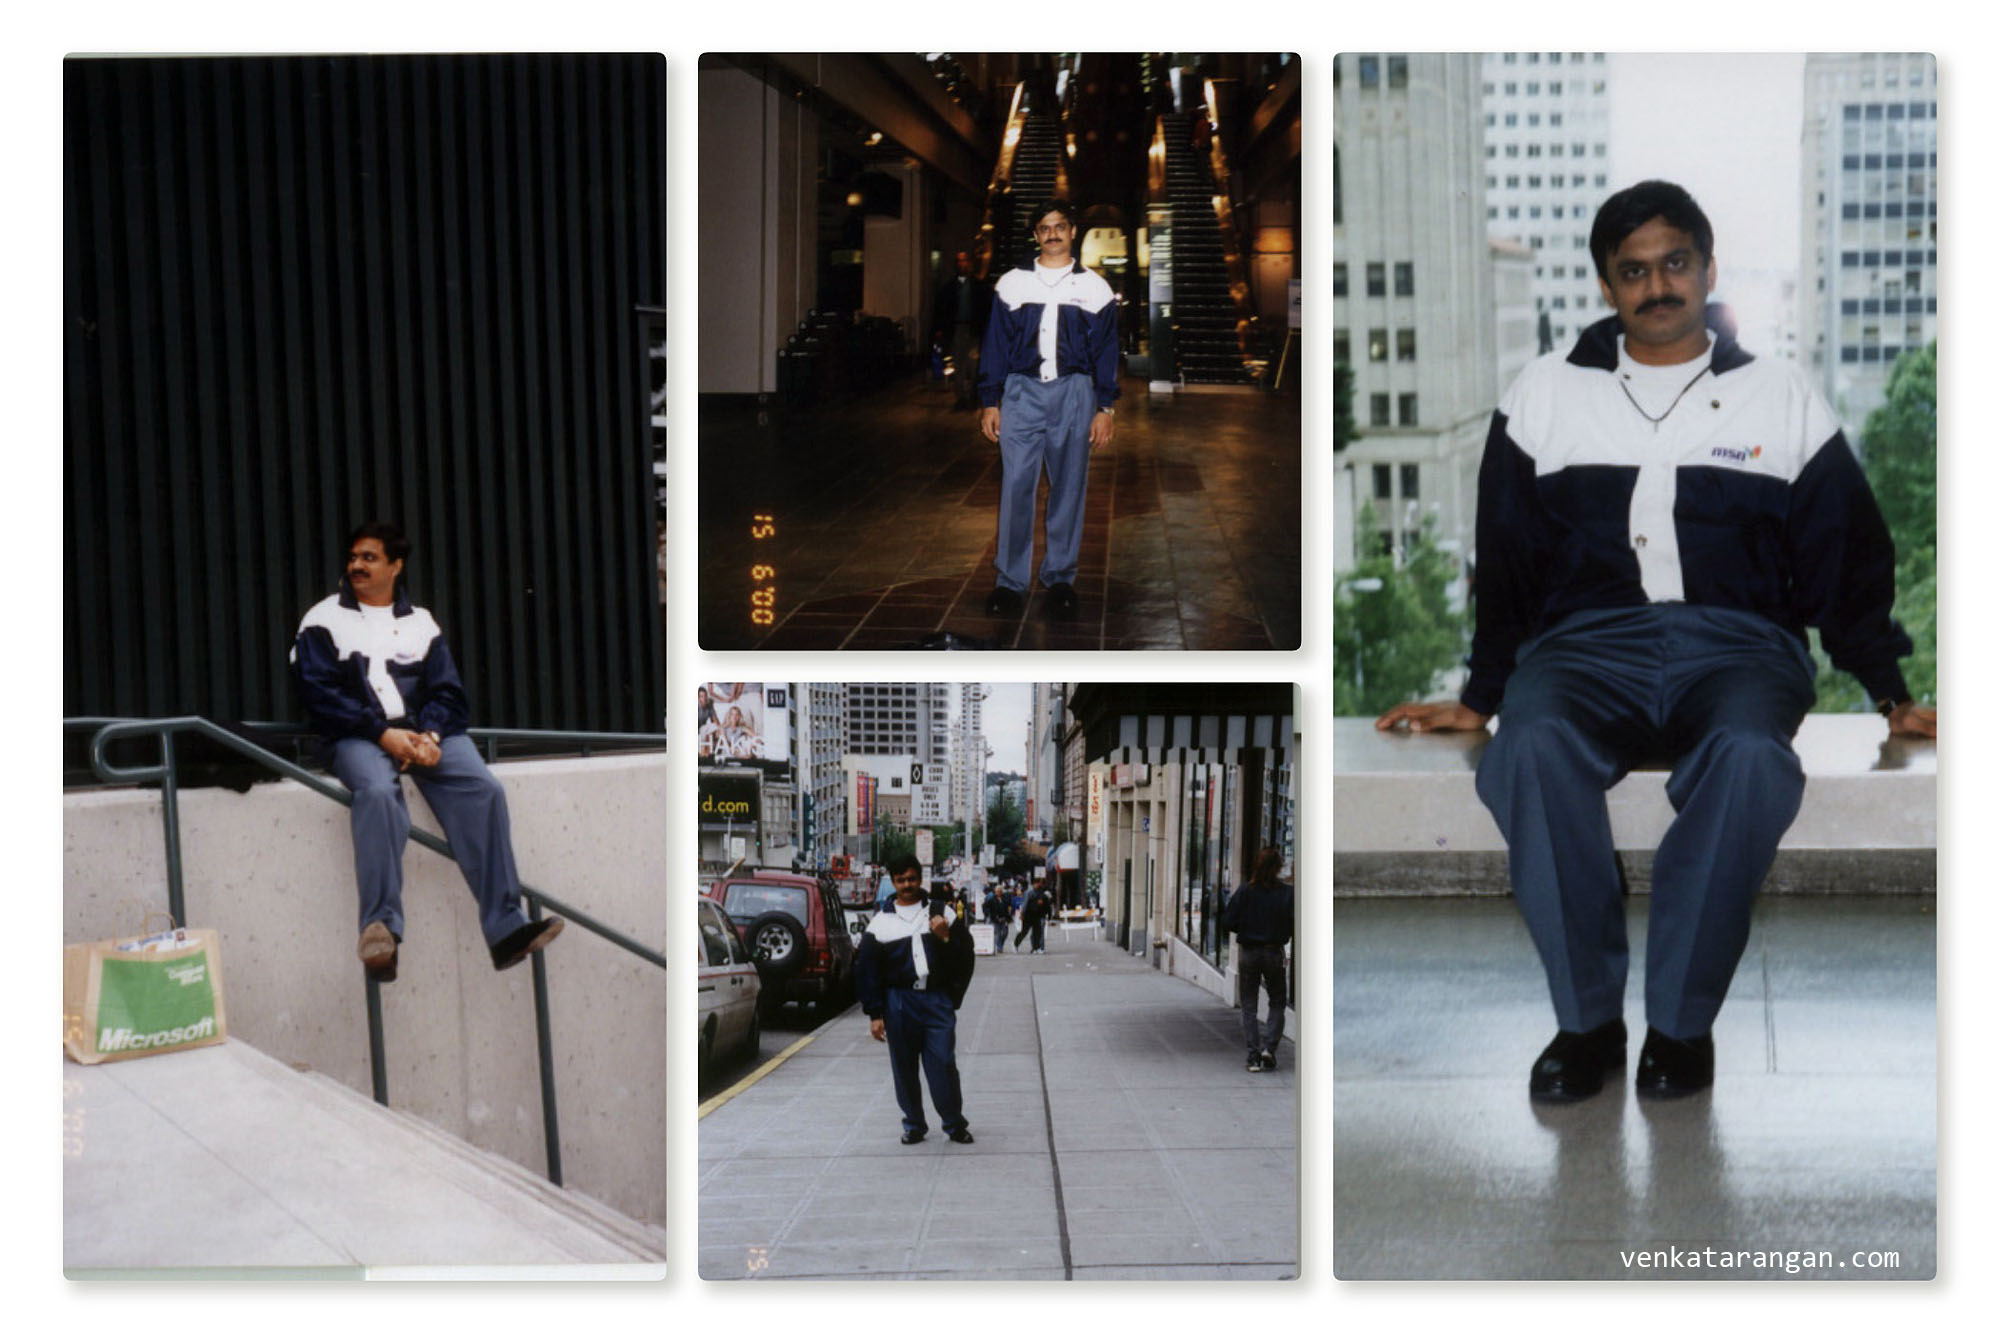 (from left) Venkatarangan sitting in front of Microsoft's Company Store in Redmond (WA), the other 3 pictures are taken in downtown Seattle in 2000